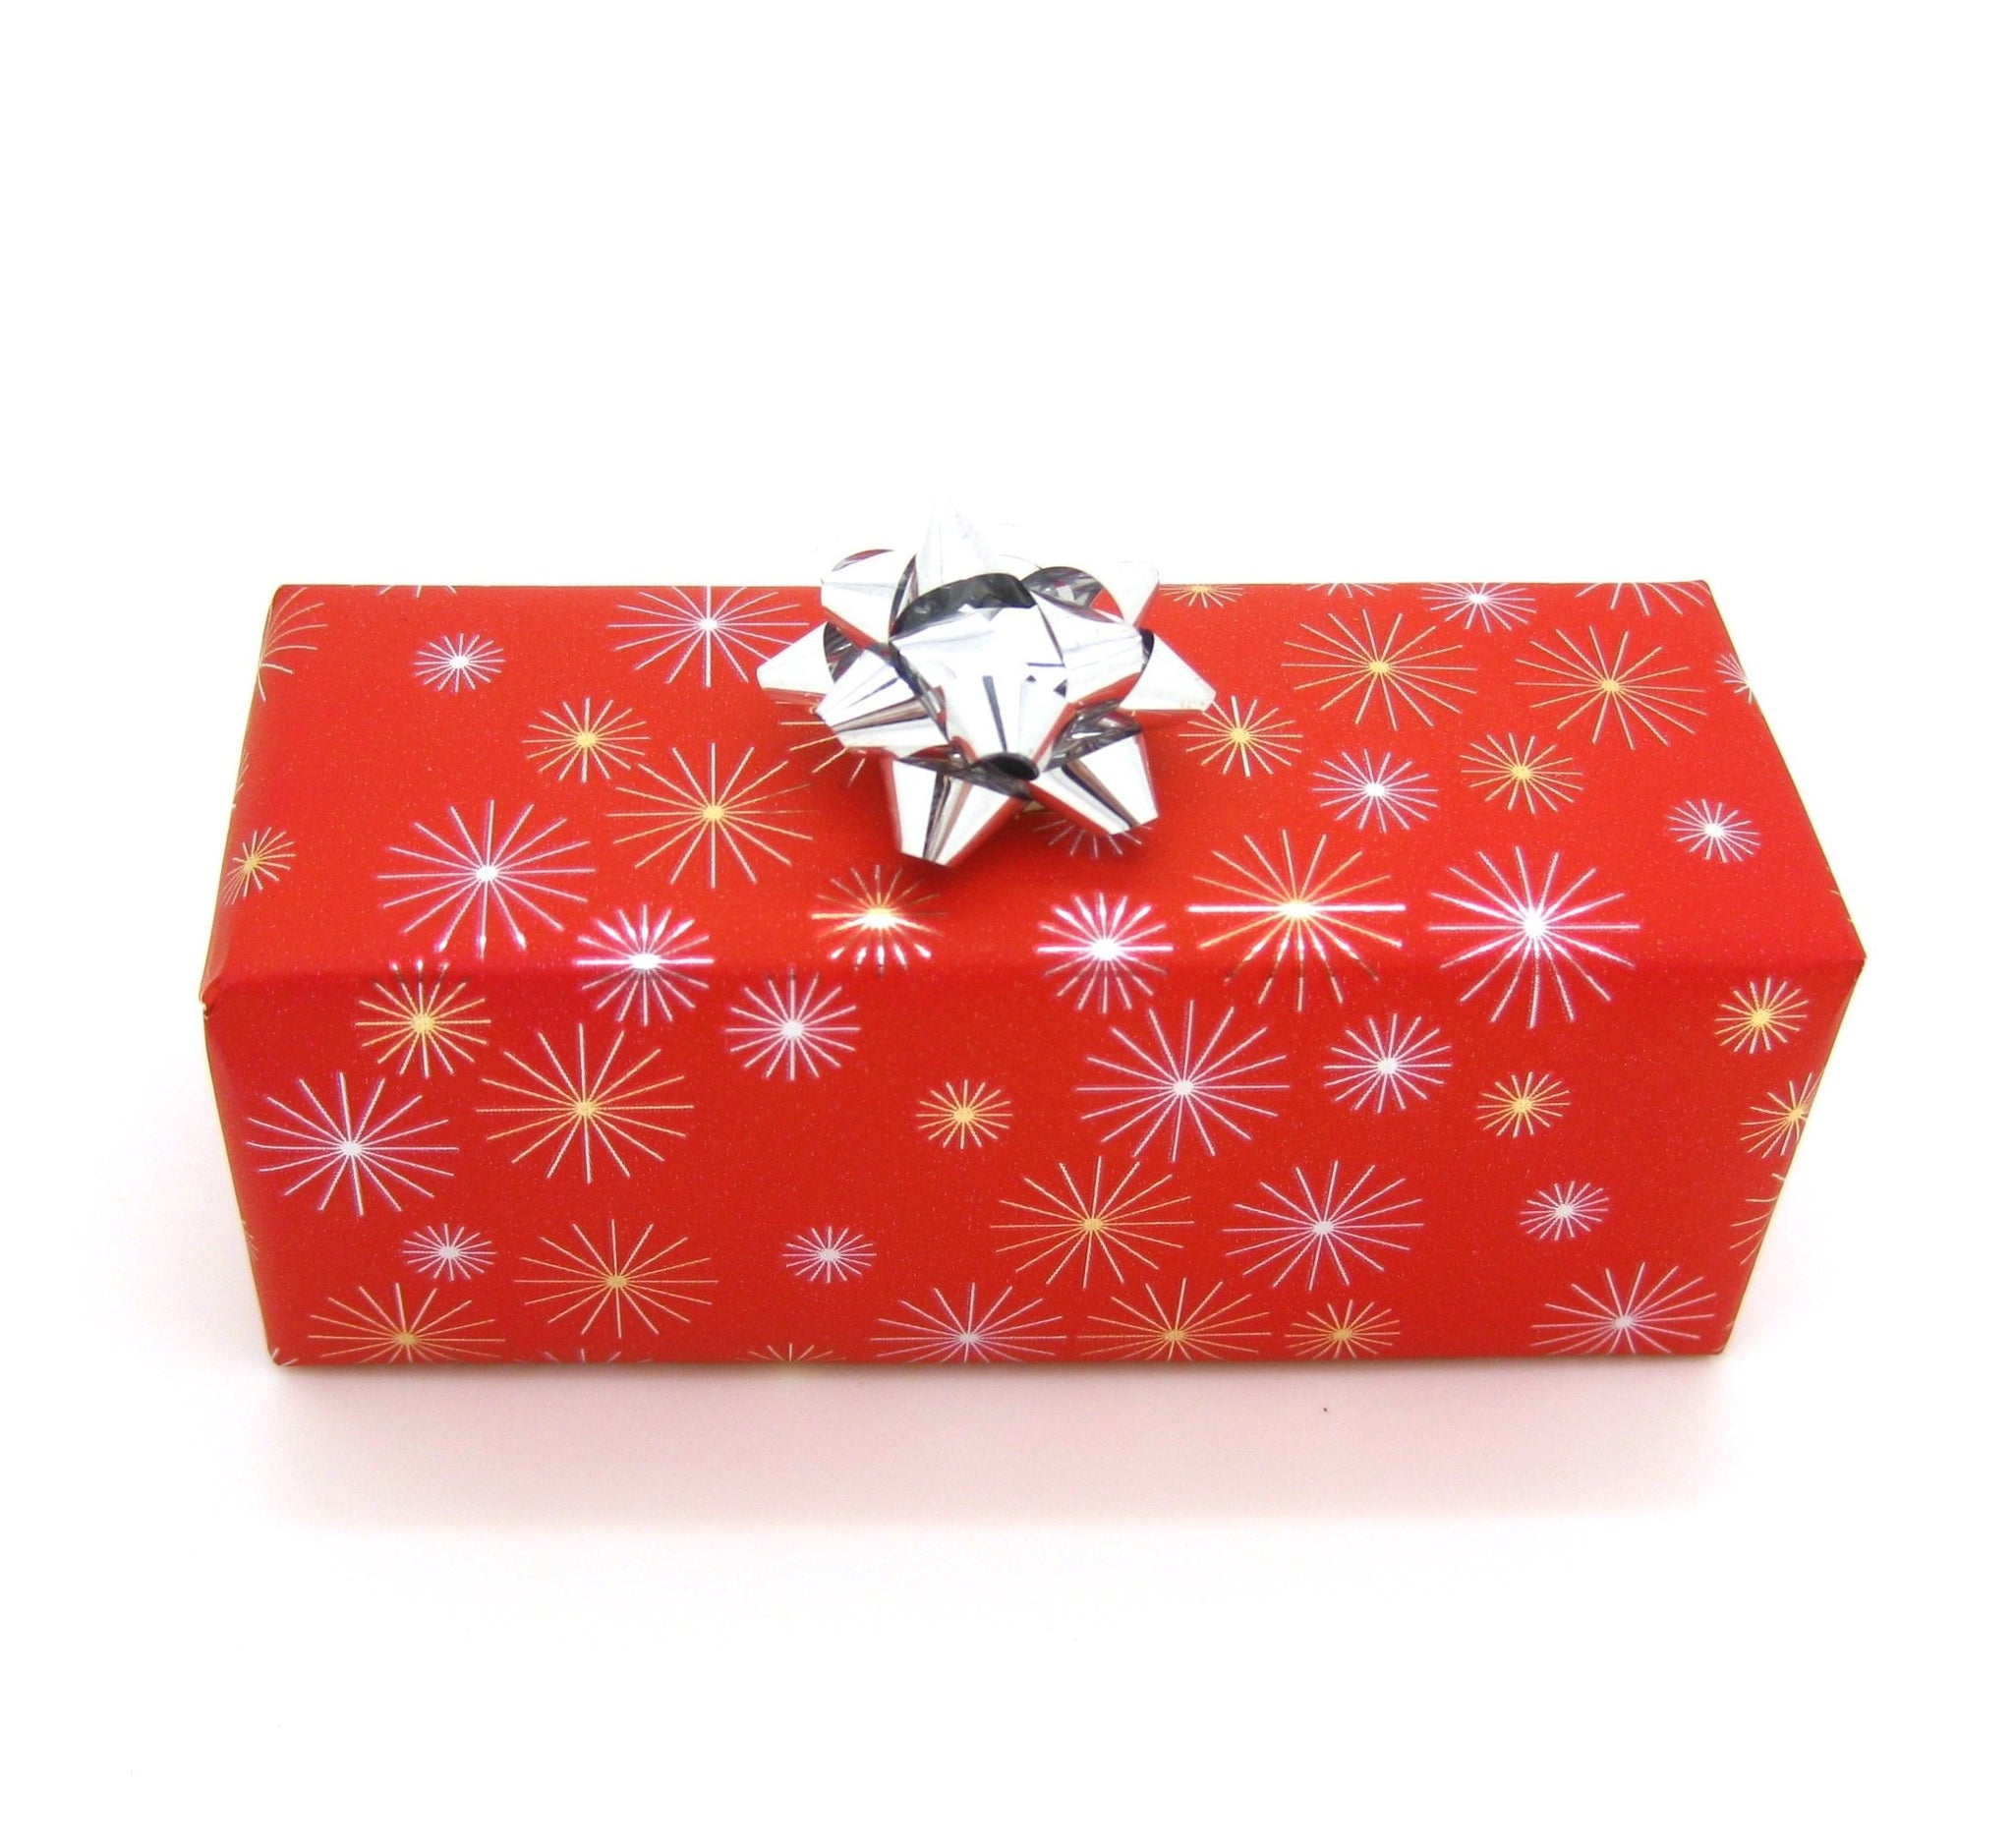 Red Star Design Xmas Wrapping Paper-Trade Xmas Gift Wrap